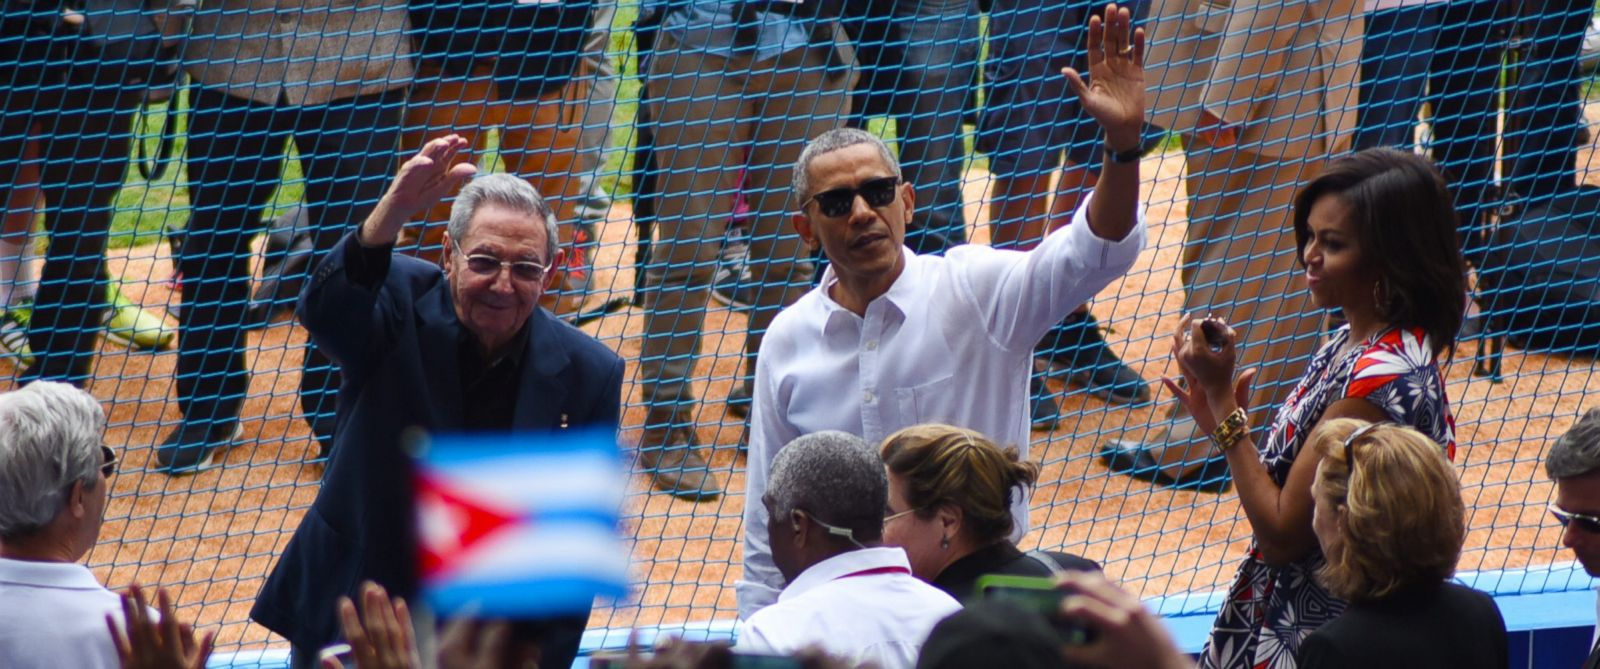 PHOTO:Cuban President Raul Castro and President Barack Obama wave to the crowd as as they attend a exhibition baseball game between the Tampa Bay Rays and the Cuban National team at the Estadio Latinoamericano, March 22, 2016, in Havana.